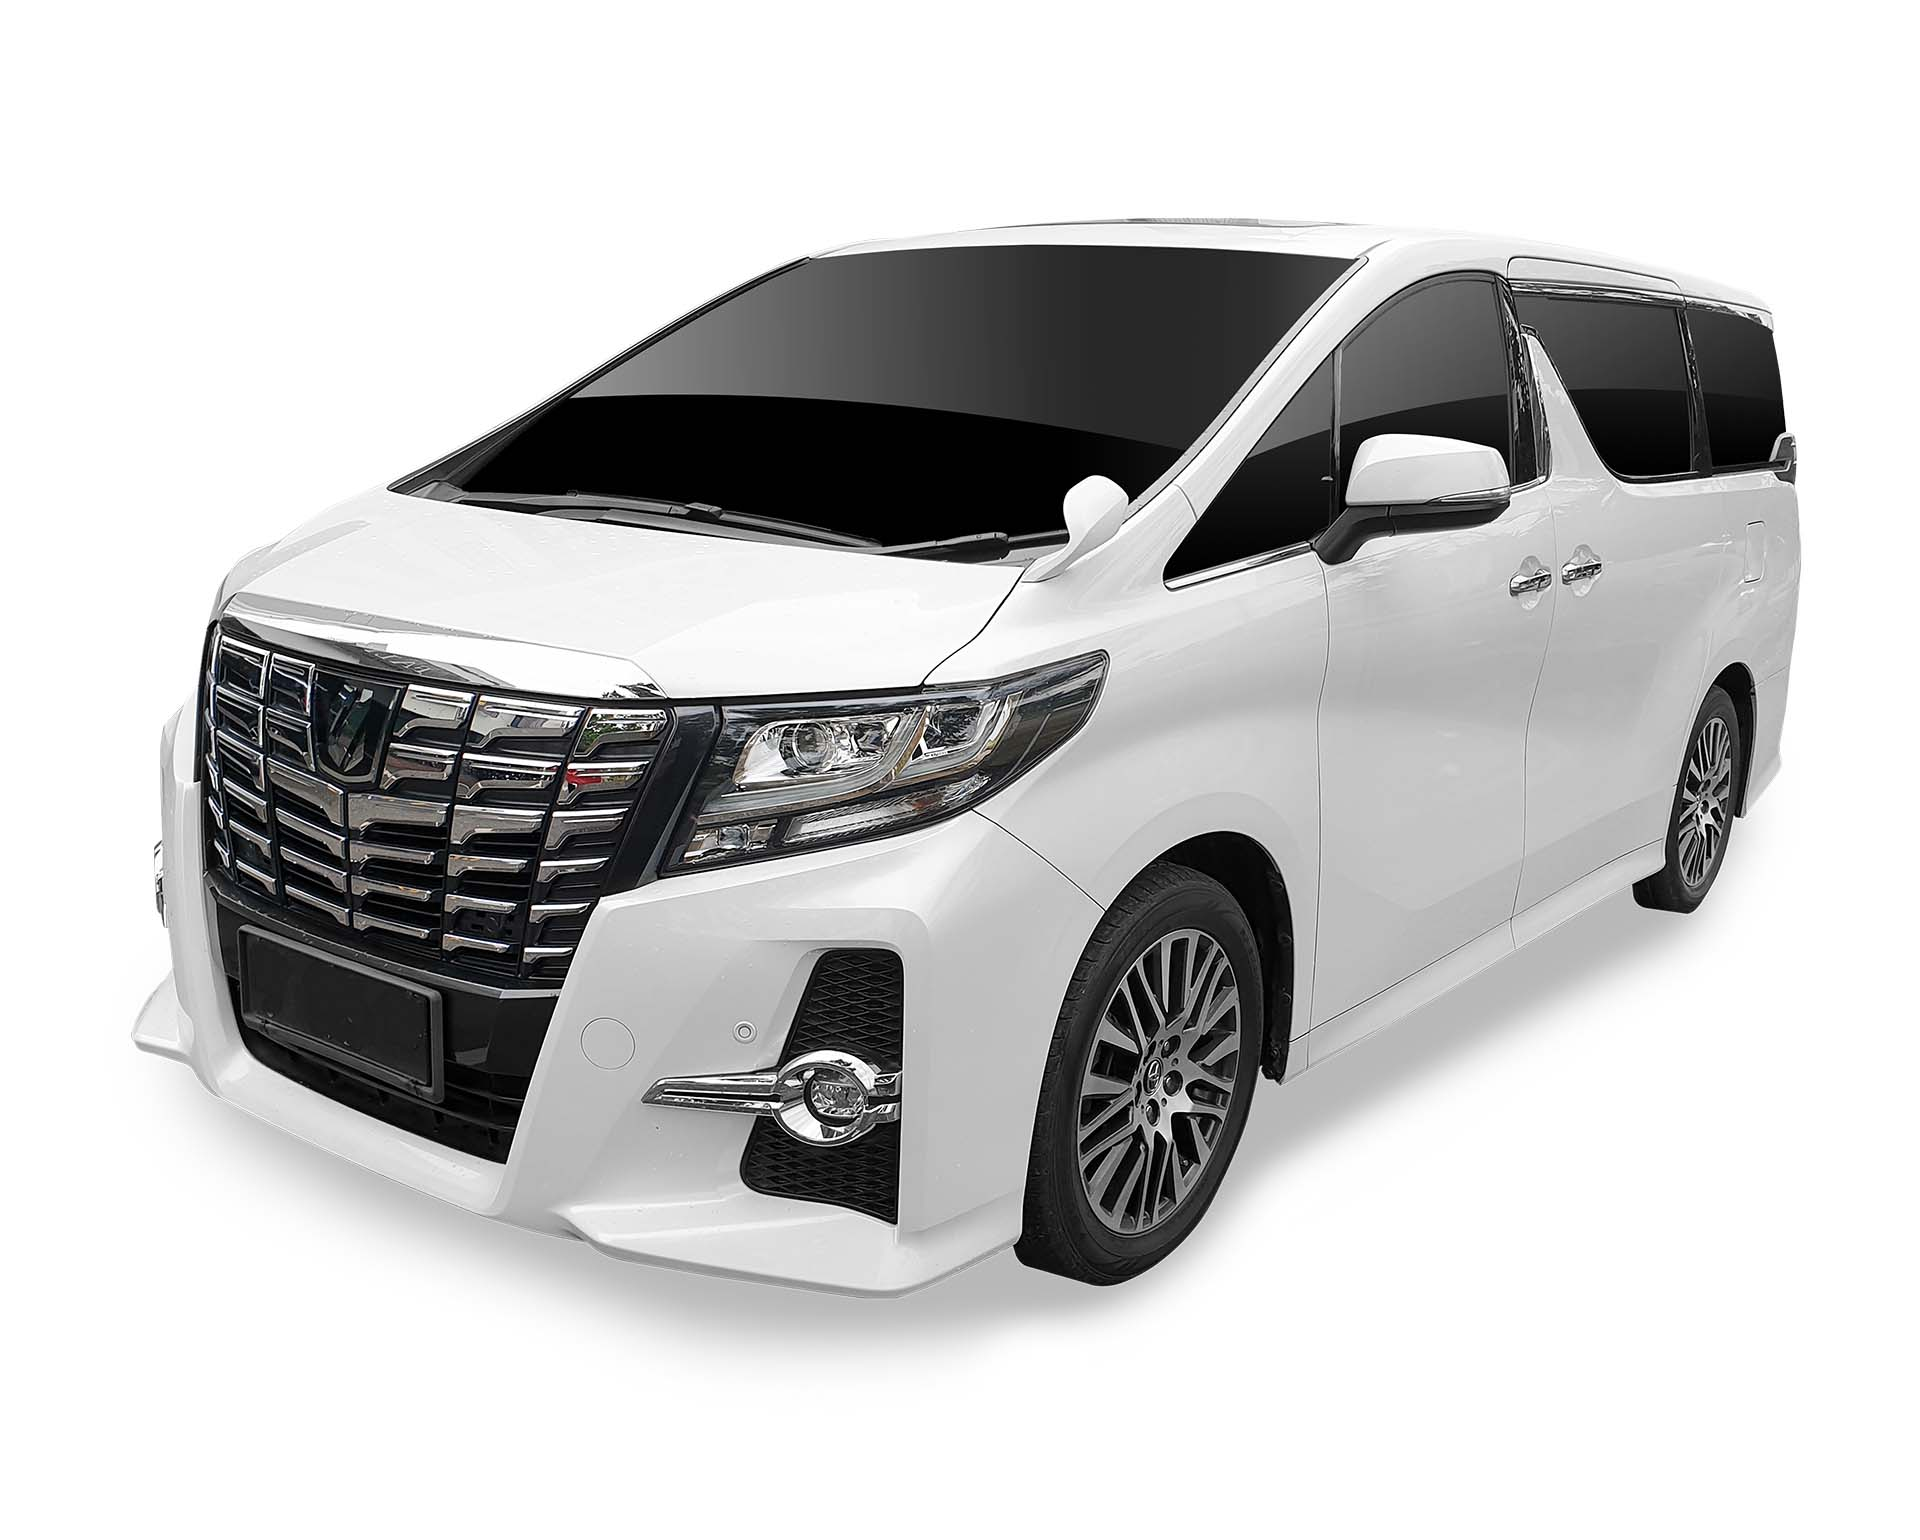 Toyota Alphard Meyer Rental